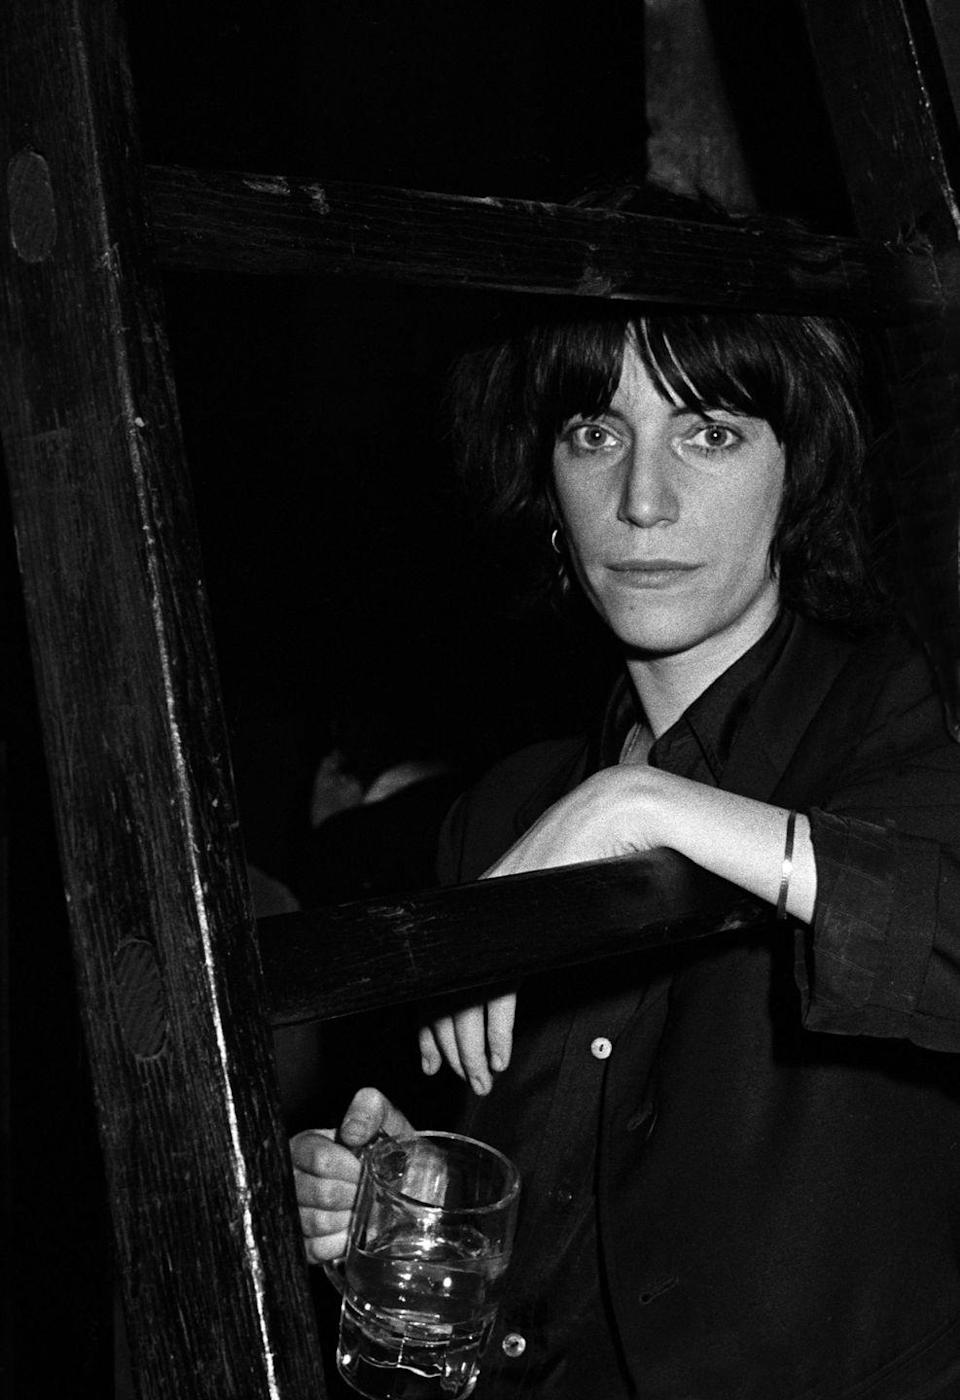 <p>Patti Smith posed backstage before performing with the Patti Smith Group at CBGB's club in New York City on April 4, 1975.</p>